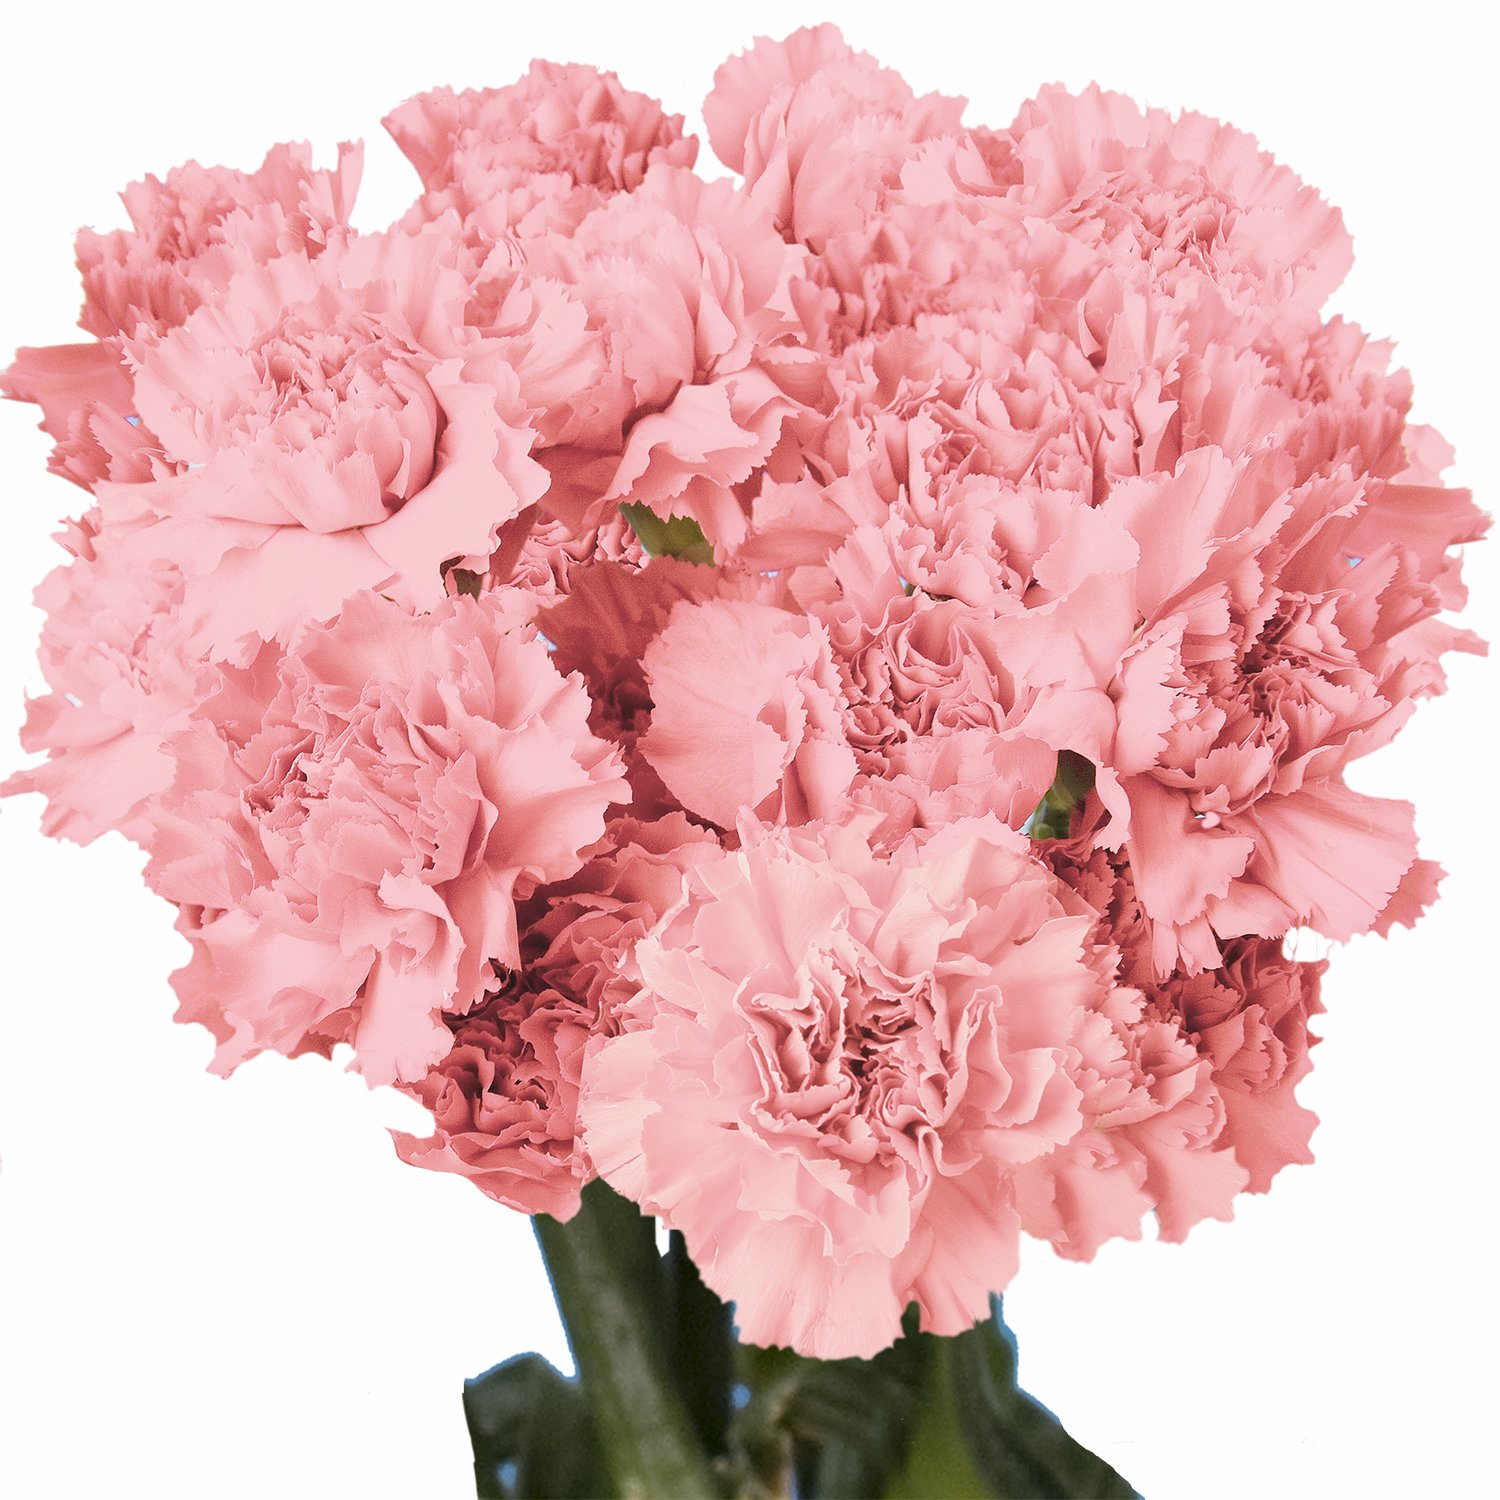 Amazon.com : GlobalRose 100 Fresh Cut White Carnations - Fresh ...